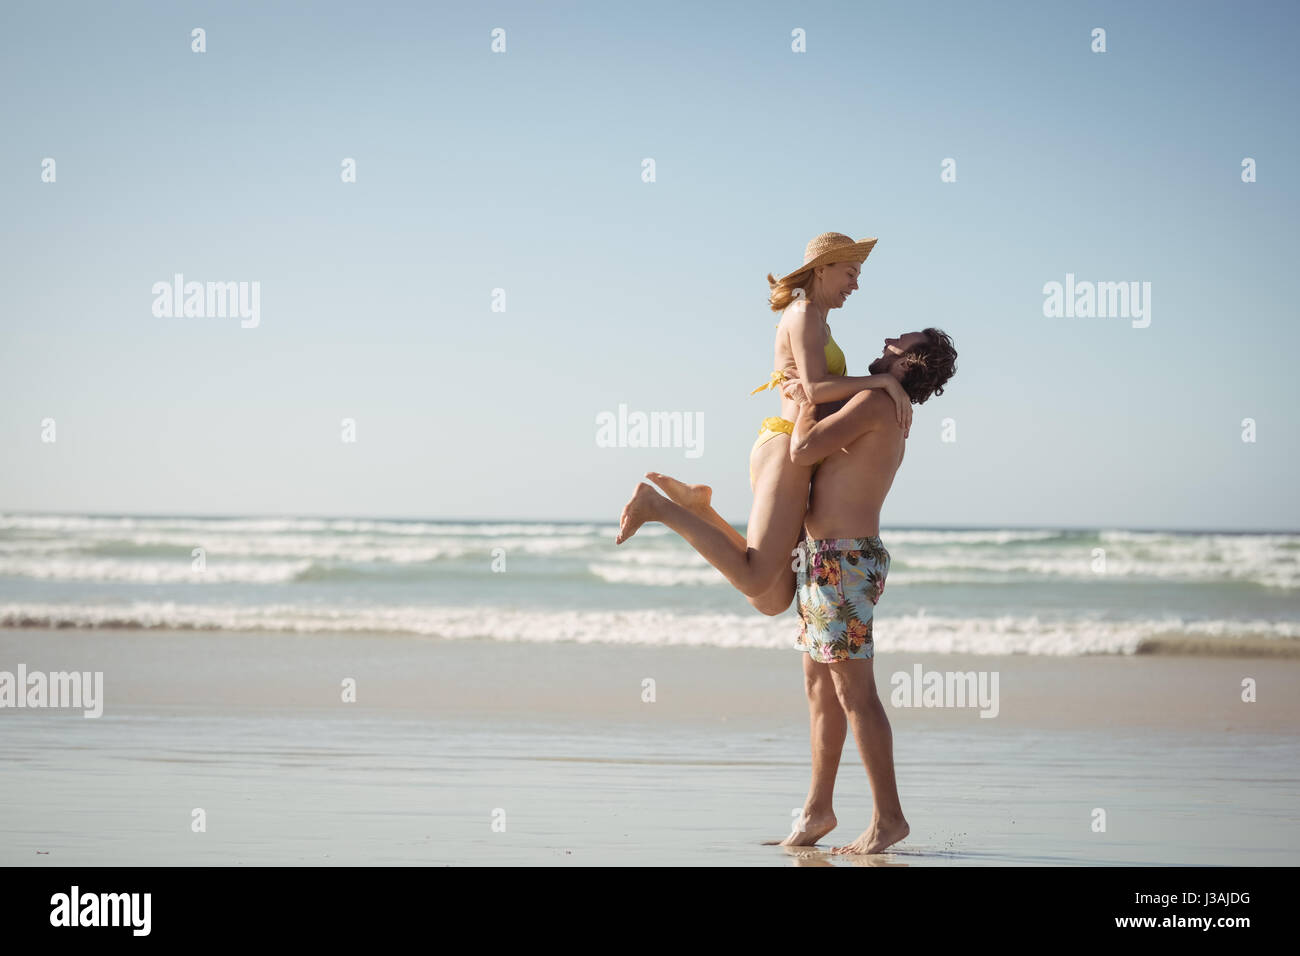 Side view of man lifting woman at beach against clear sky during sunny day - Stock Image